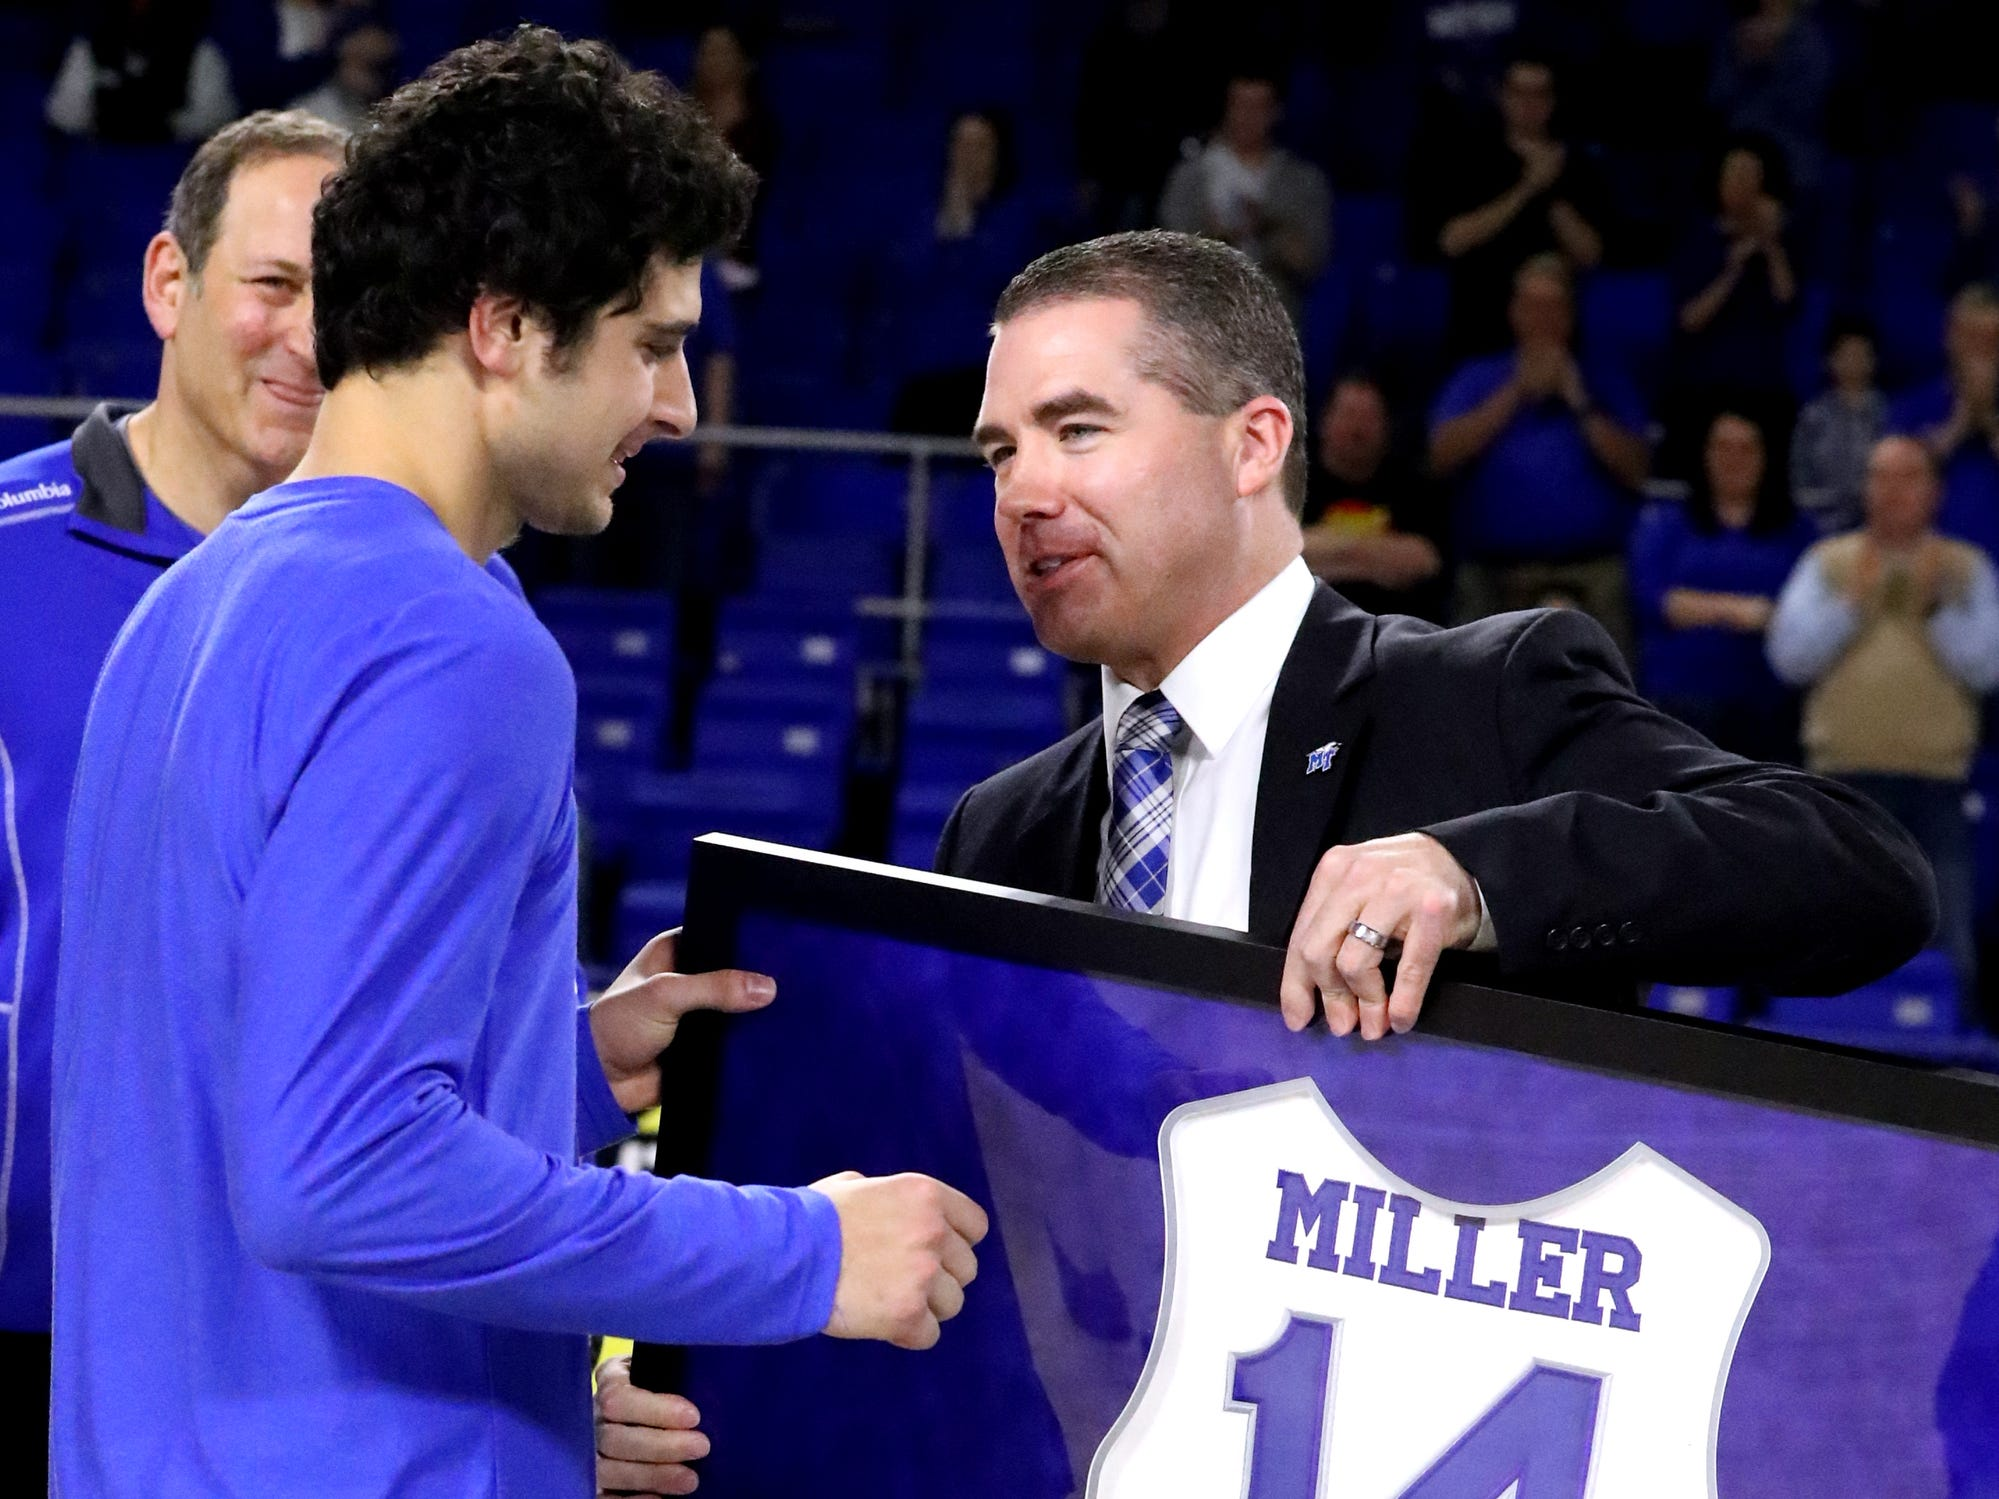 MTSU head coach Nick McDevitt honors MTSU guard Chase Miller (14) with a framed jersey during MTSU's senior night before the game against UTEP on Saturday, March 9, 2019, at Murphy Center in Murfreesboro, Tenn.